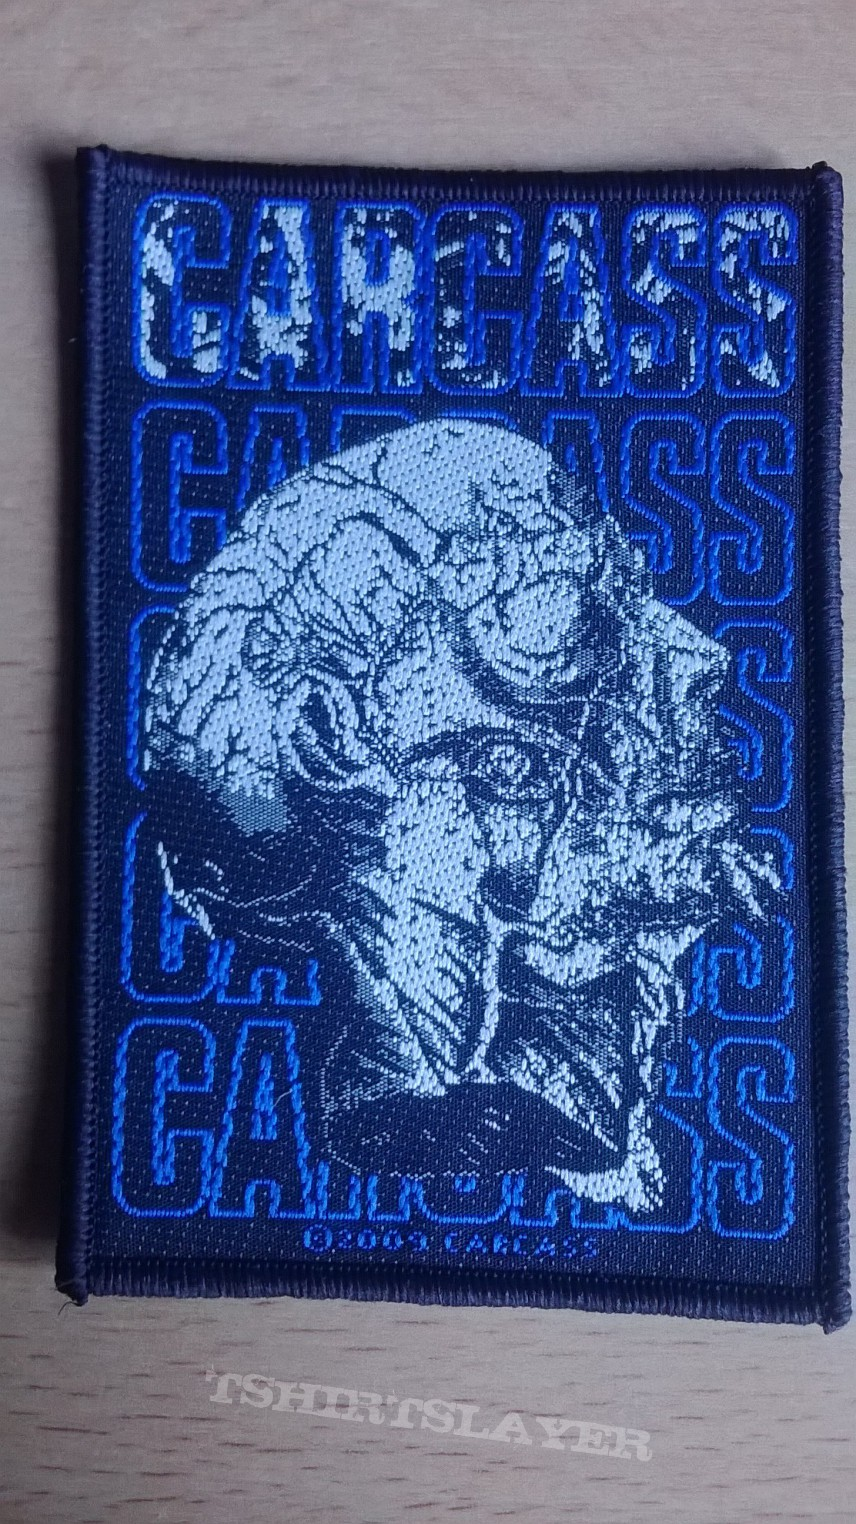 carcass patch for sale or trade